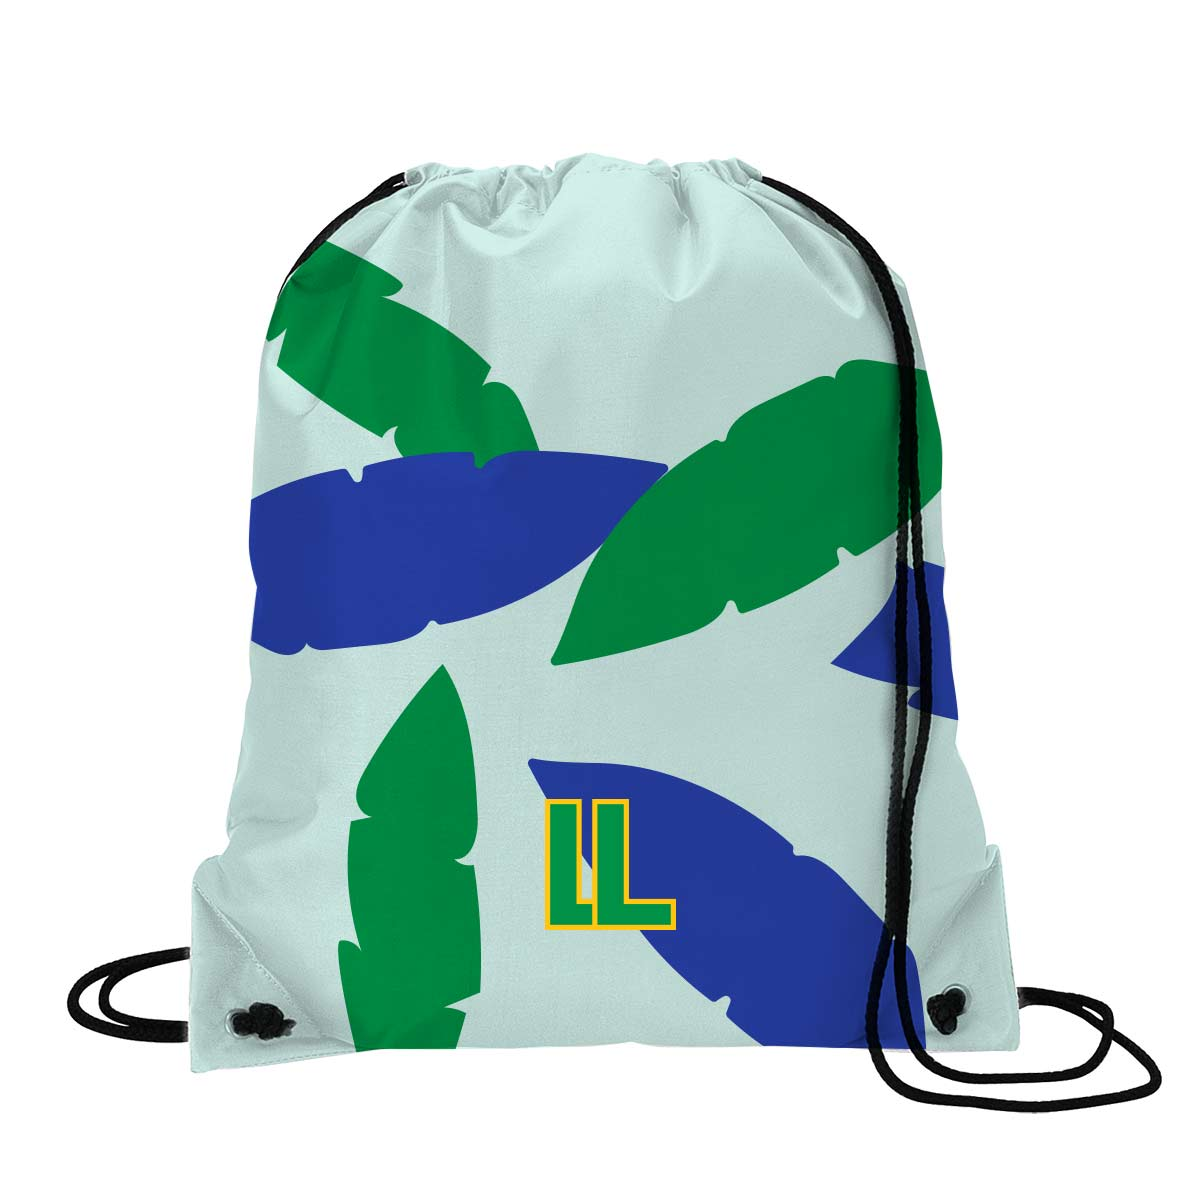 146642 radiant drawstring backpack full color digital imprint